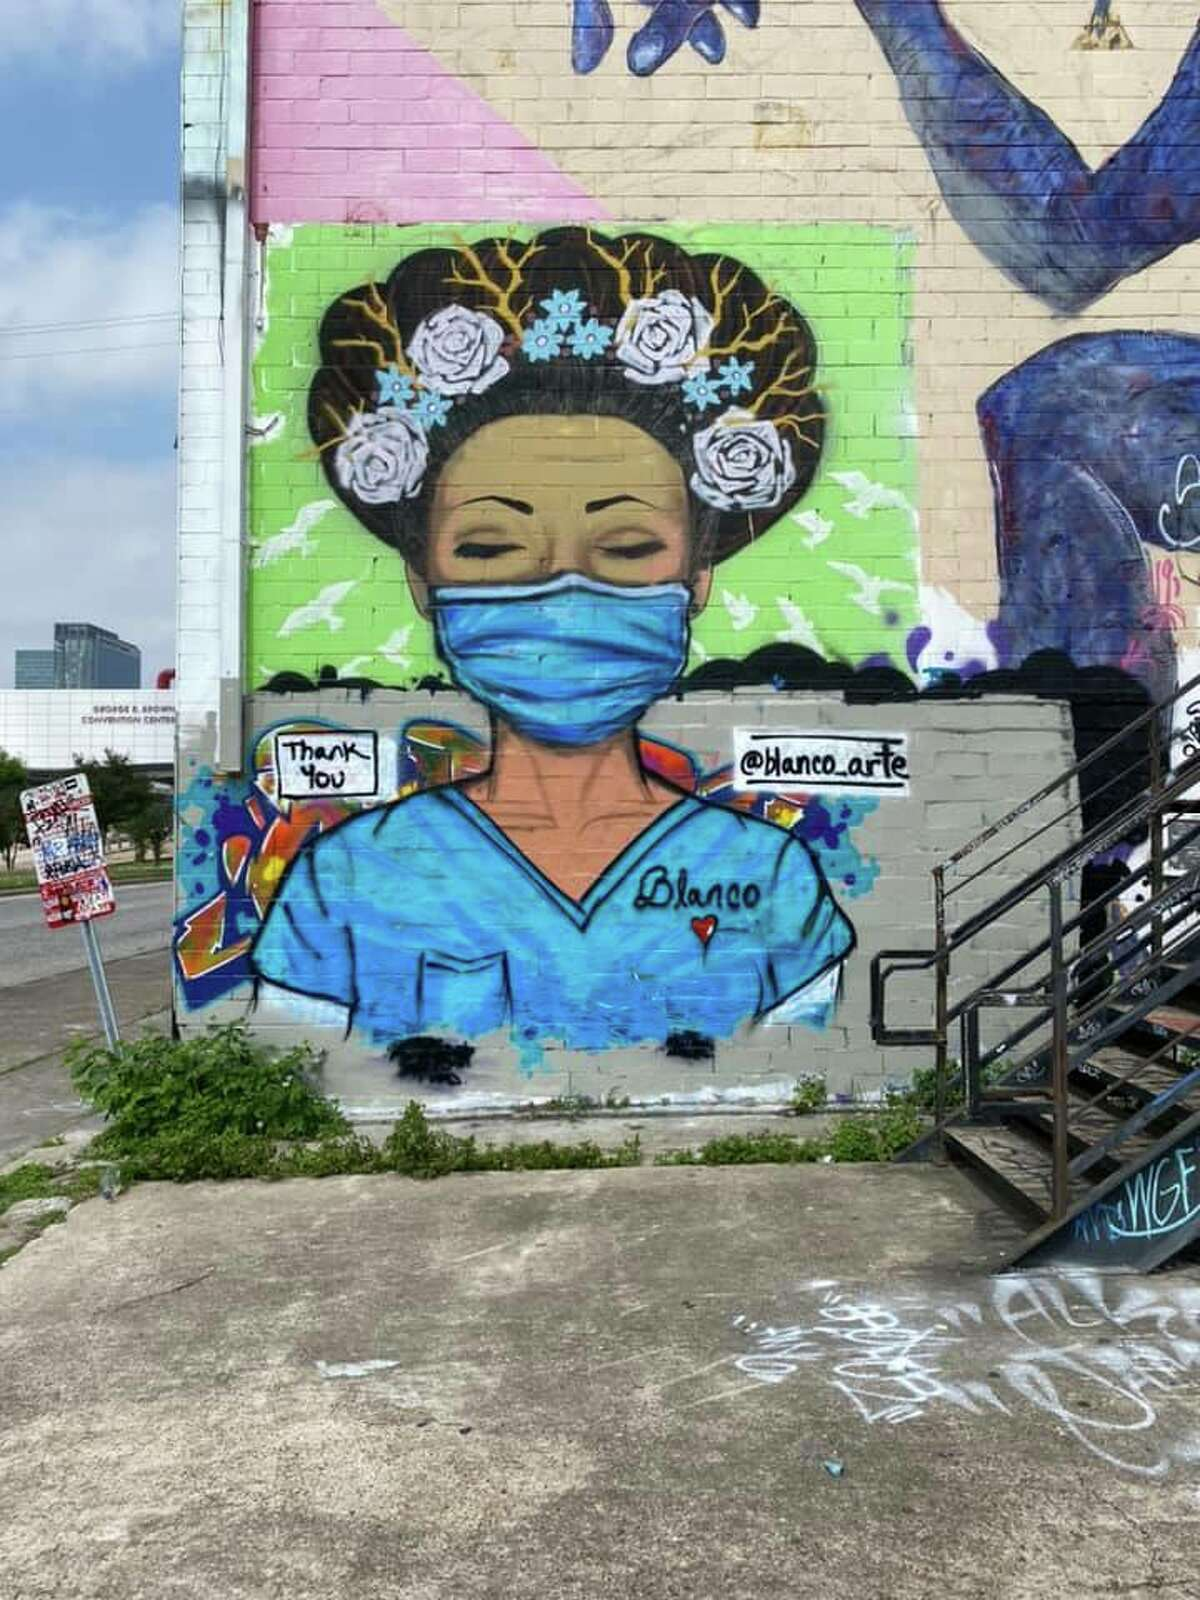 Artist: Sylvia Blanco Art on FacebookLocation: 2102 Leeland Street (Graffiti Park)